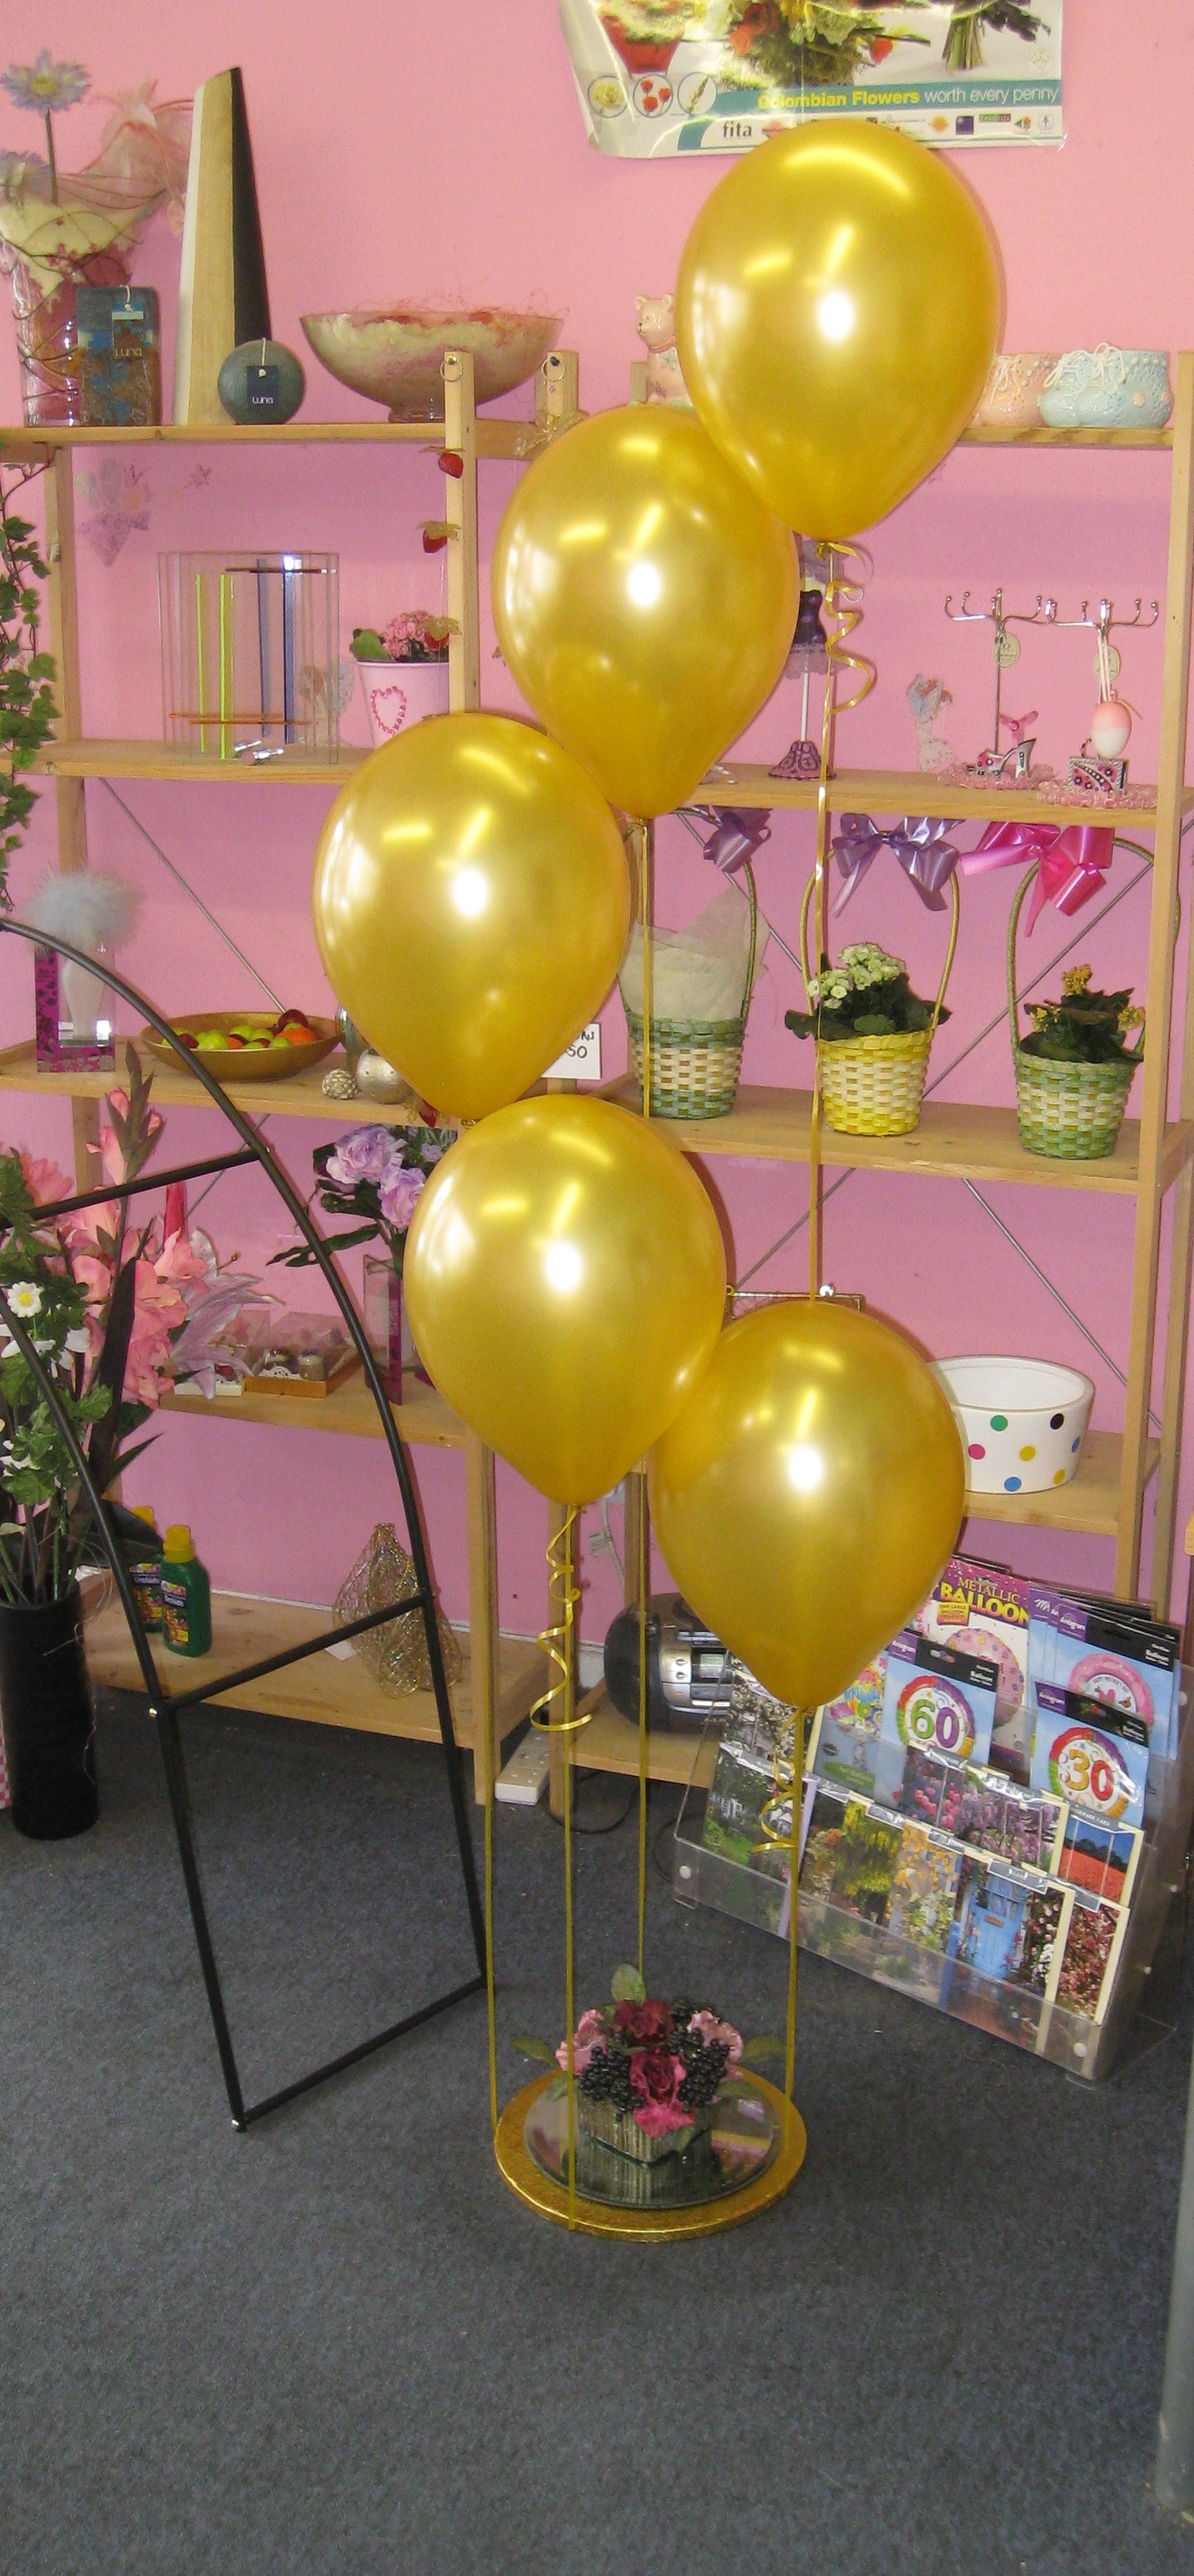 Beginners Balloon Decorating Courses